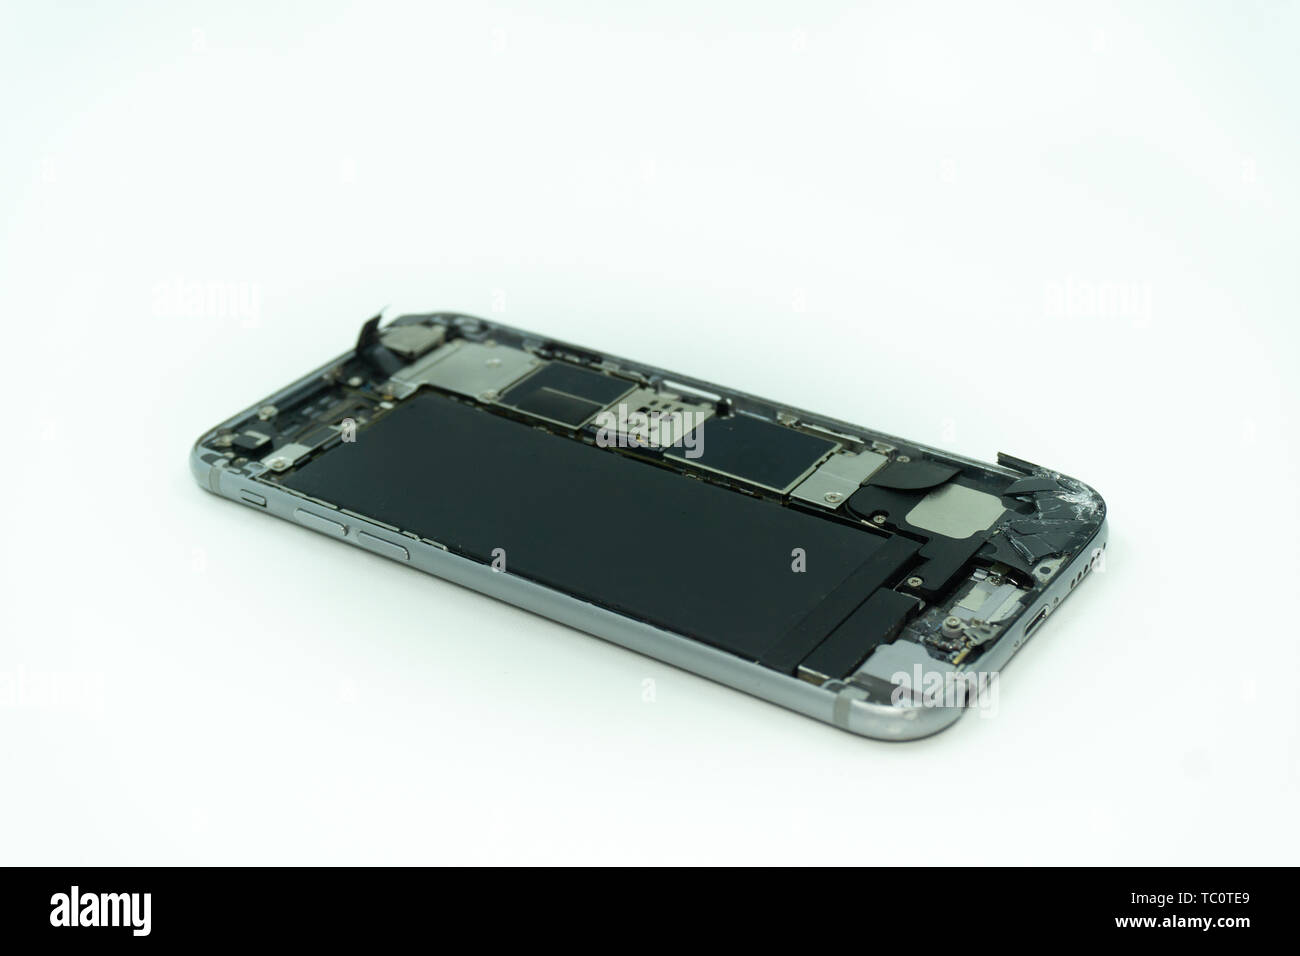 Photo of a mobile phone with broken display. Isolated on white with copy space - Stock Image